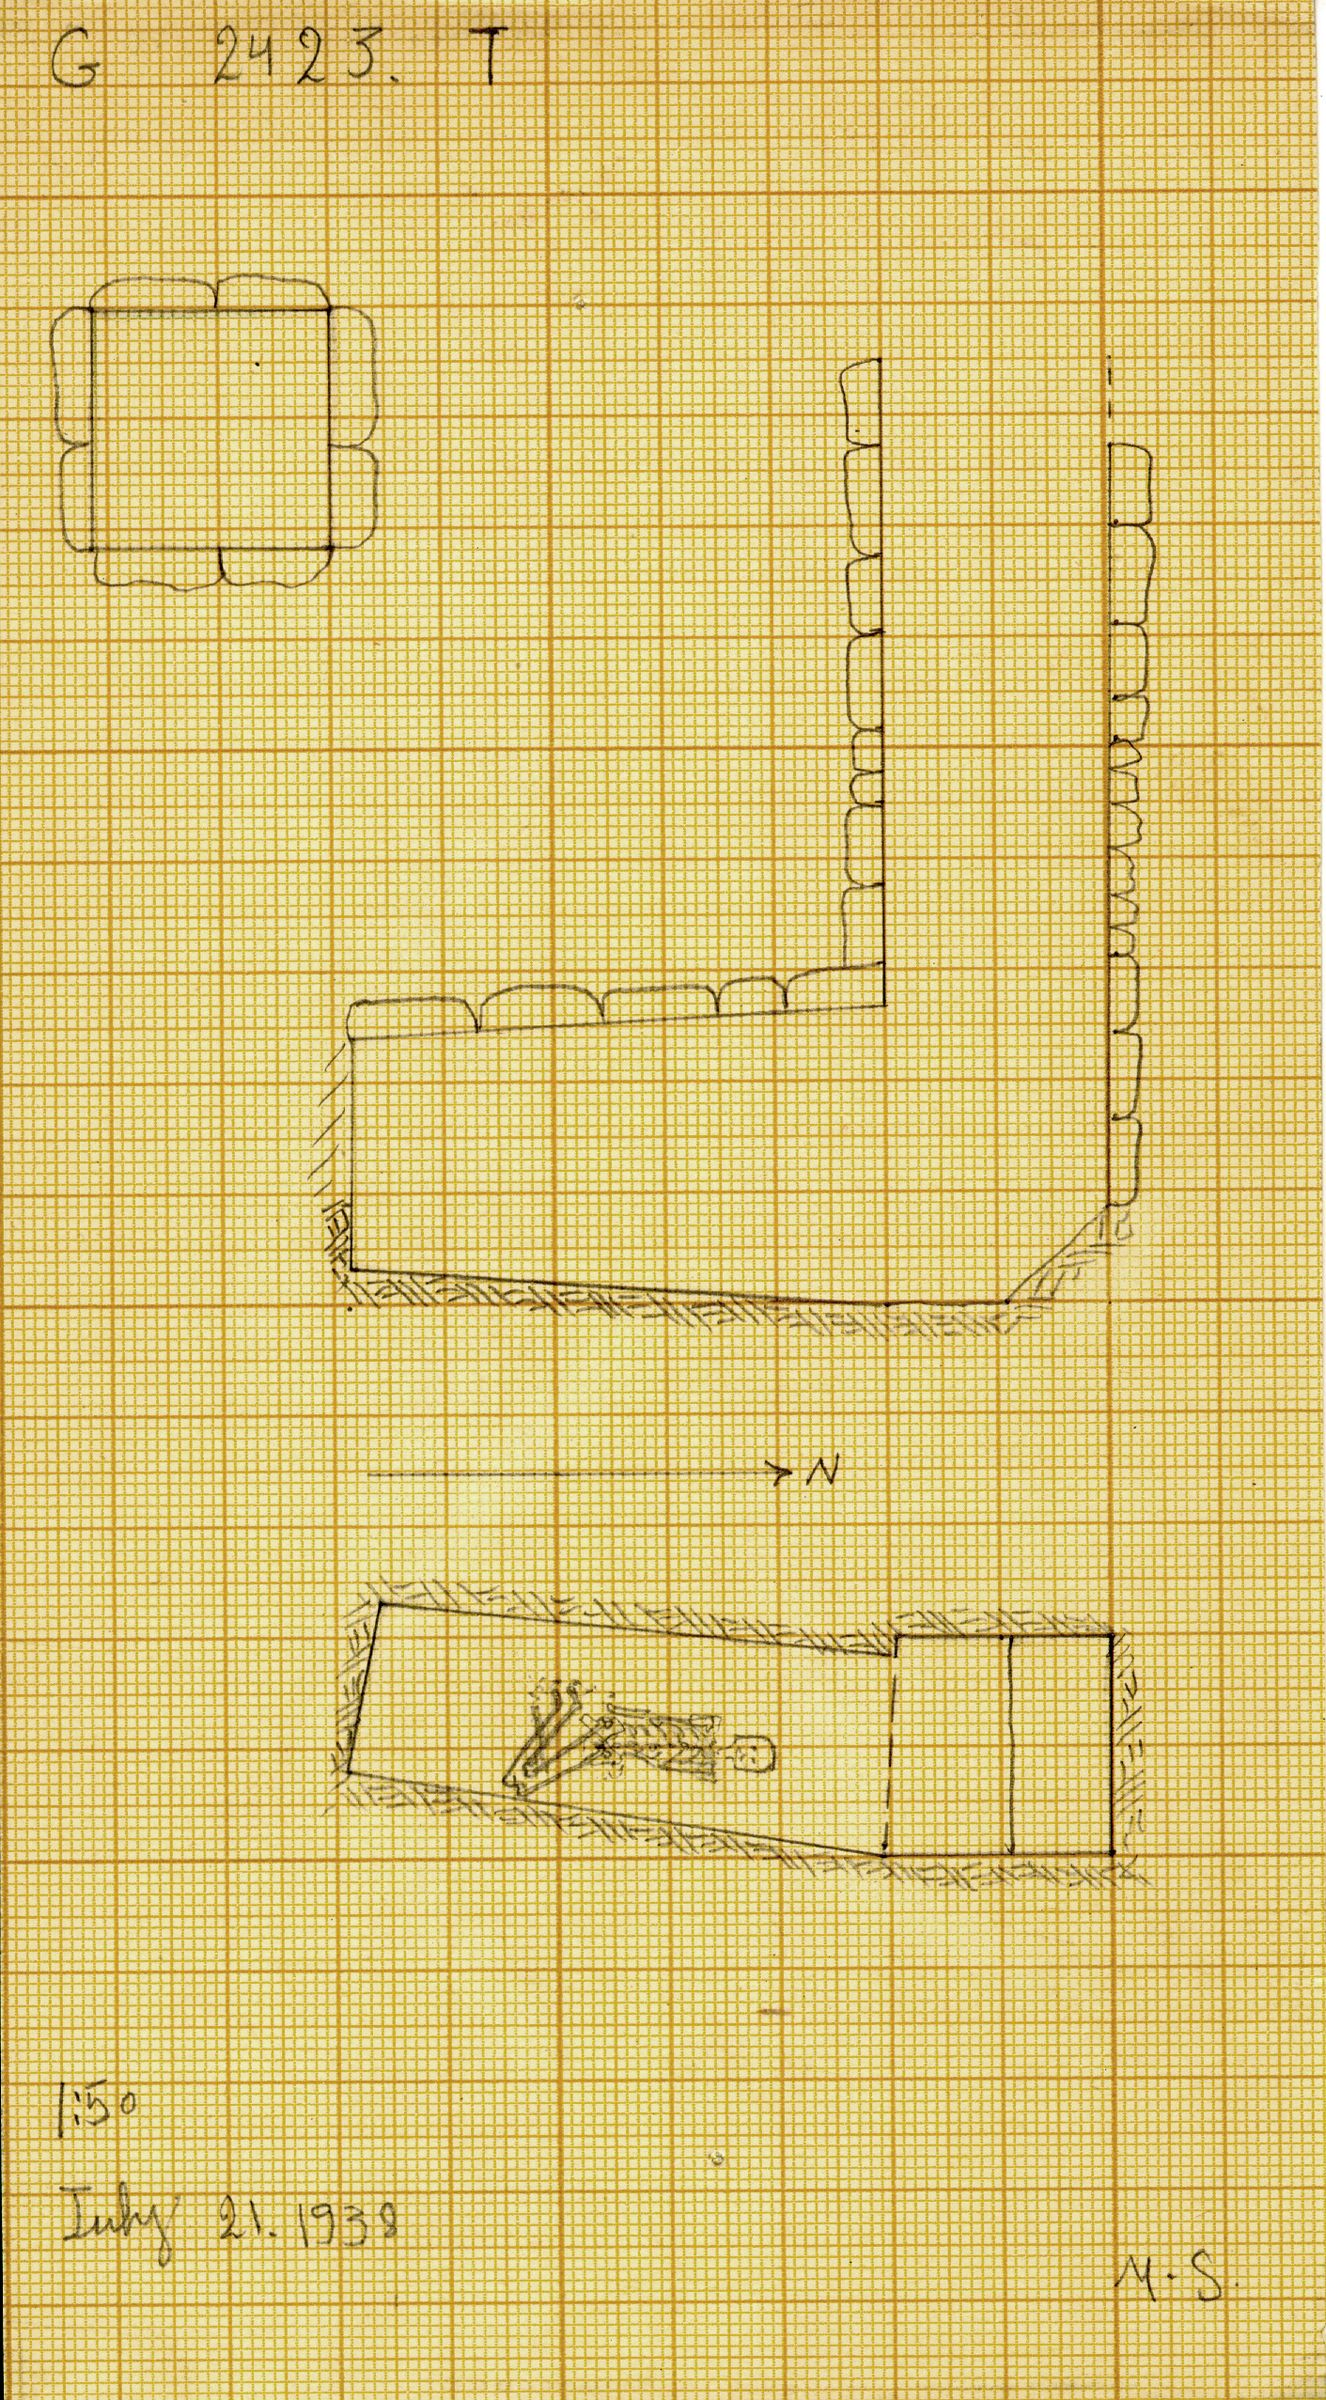 Maps and plans: G 2423, Shaft T